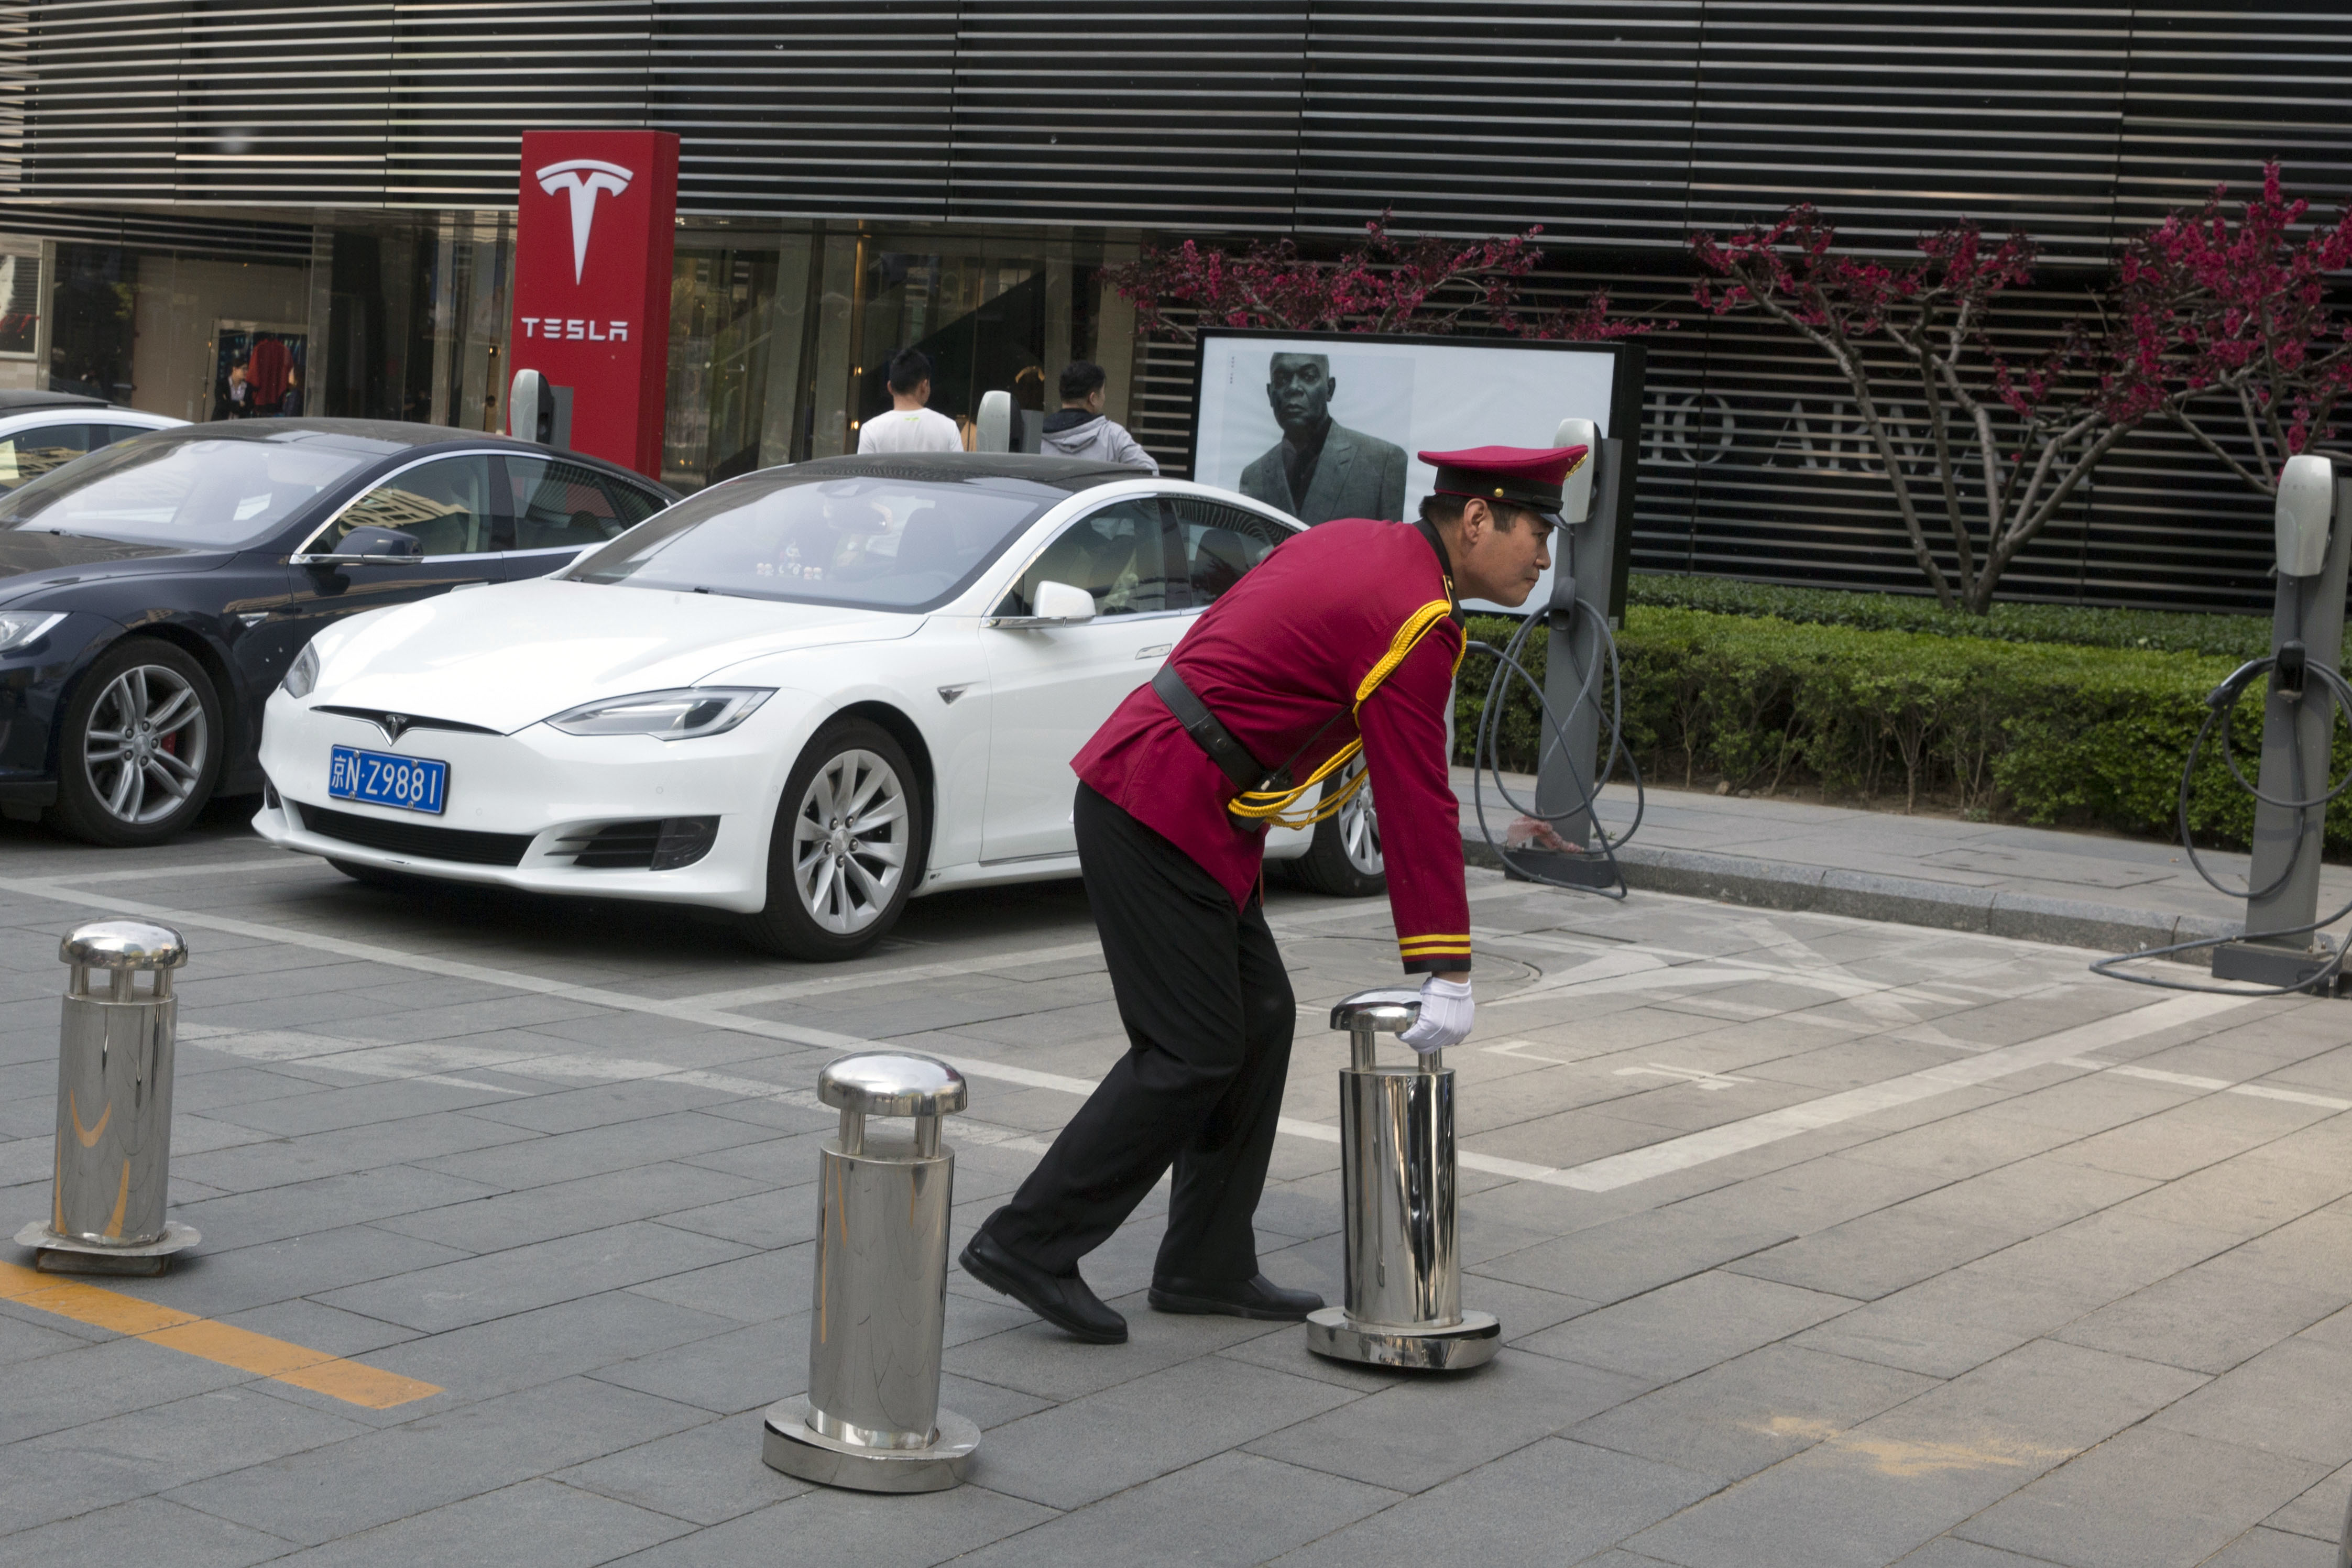 China Electric Car Dreams-2 In this Friday, April 14, 2017 photo, a security personnel removes barricade near an area closed off for Tesla electric vehicles to charge in Beijing, China. Automakers face a conflict in China's huge but crowded market: Regulators are pushing them to sell electric cars, but buyers want gasoline-hungry SUVs. (AP Photo/Ng Han Guan)